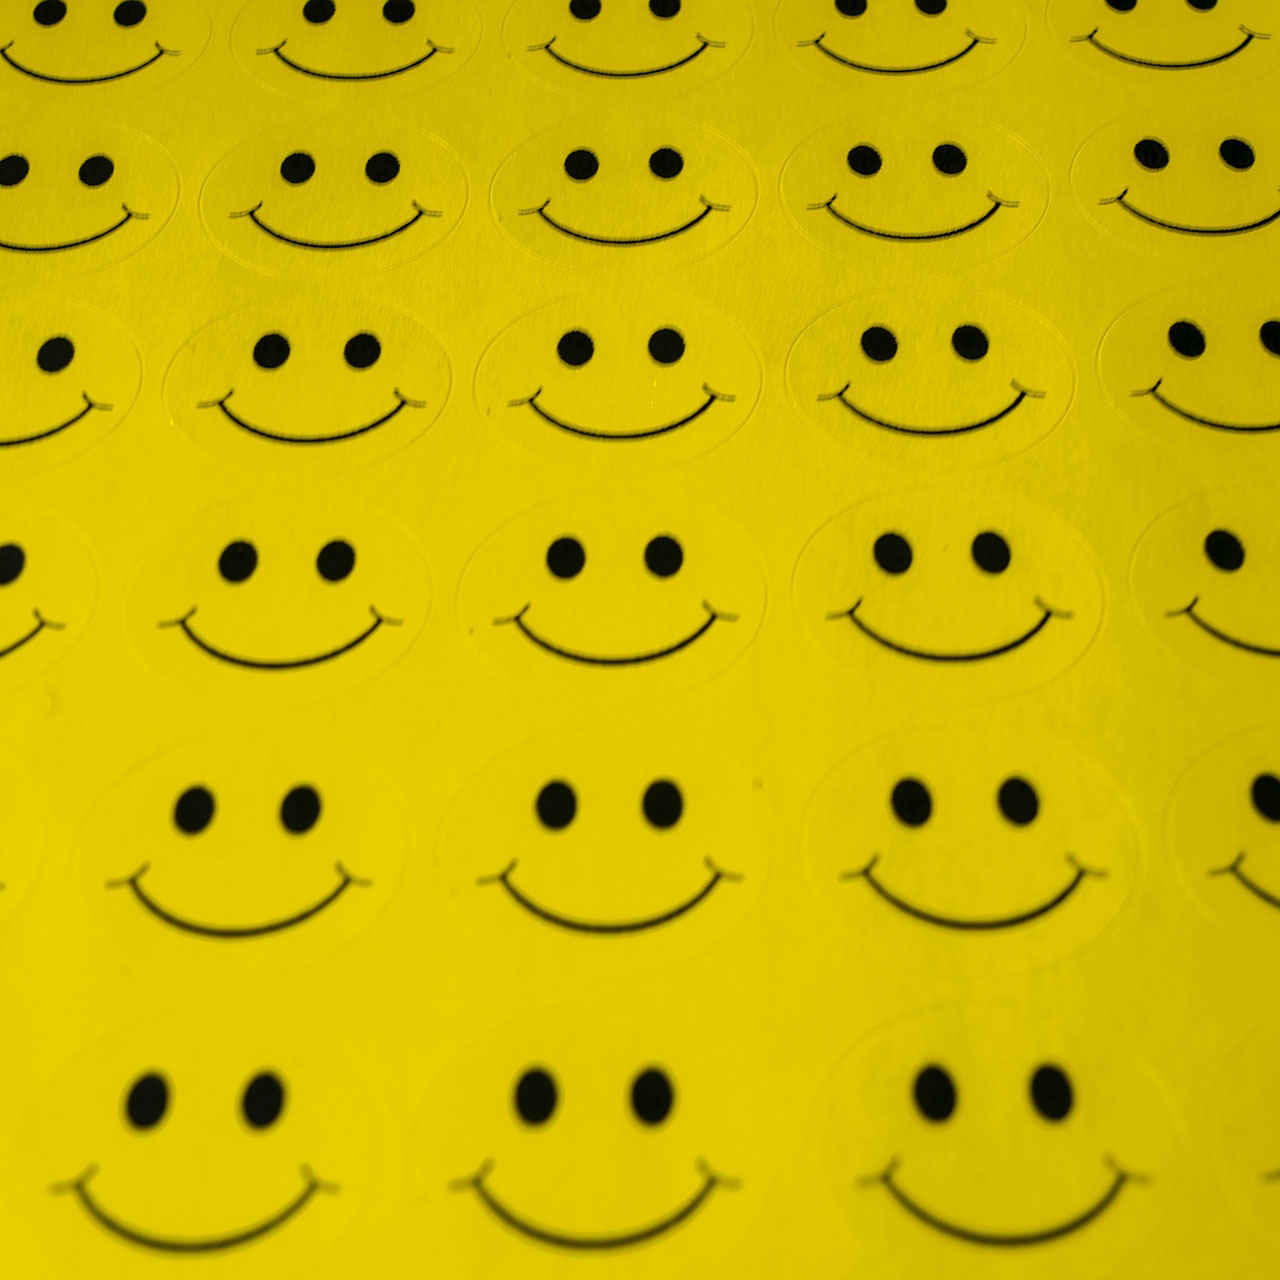 protection messagerie liberte smiley